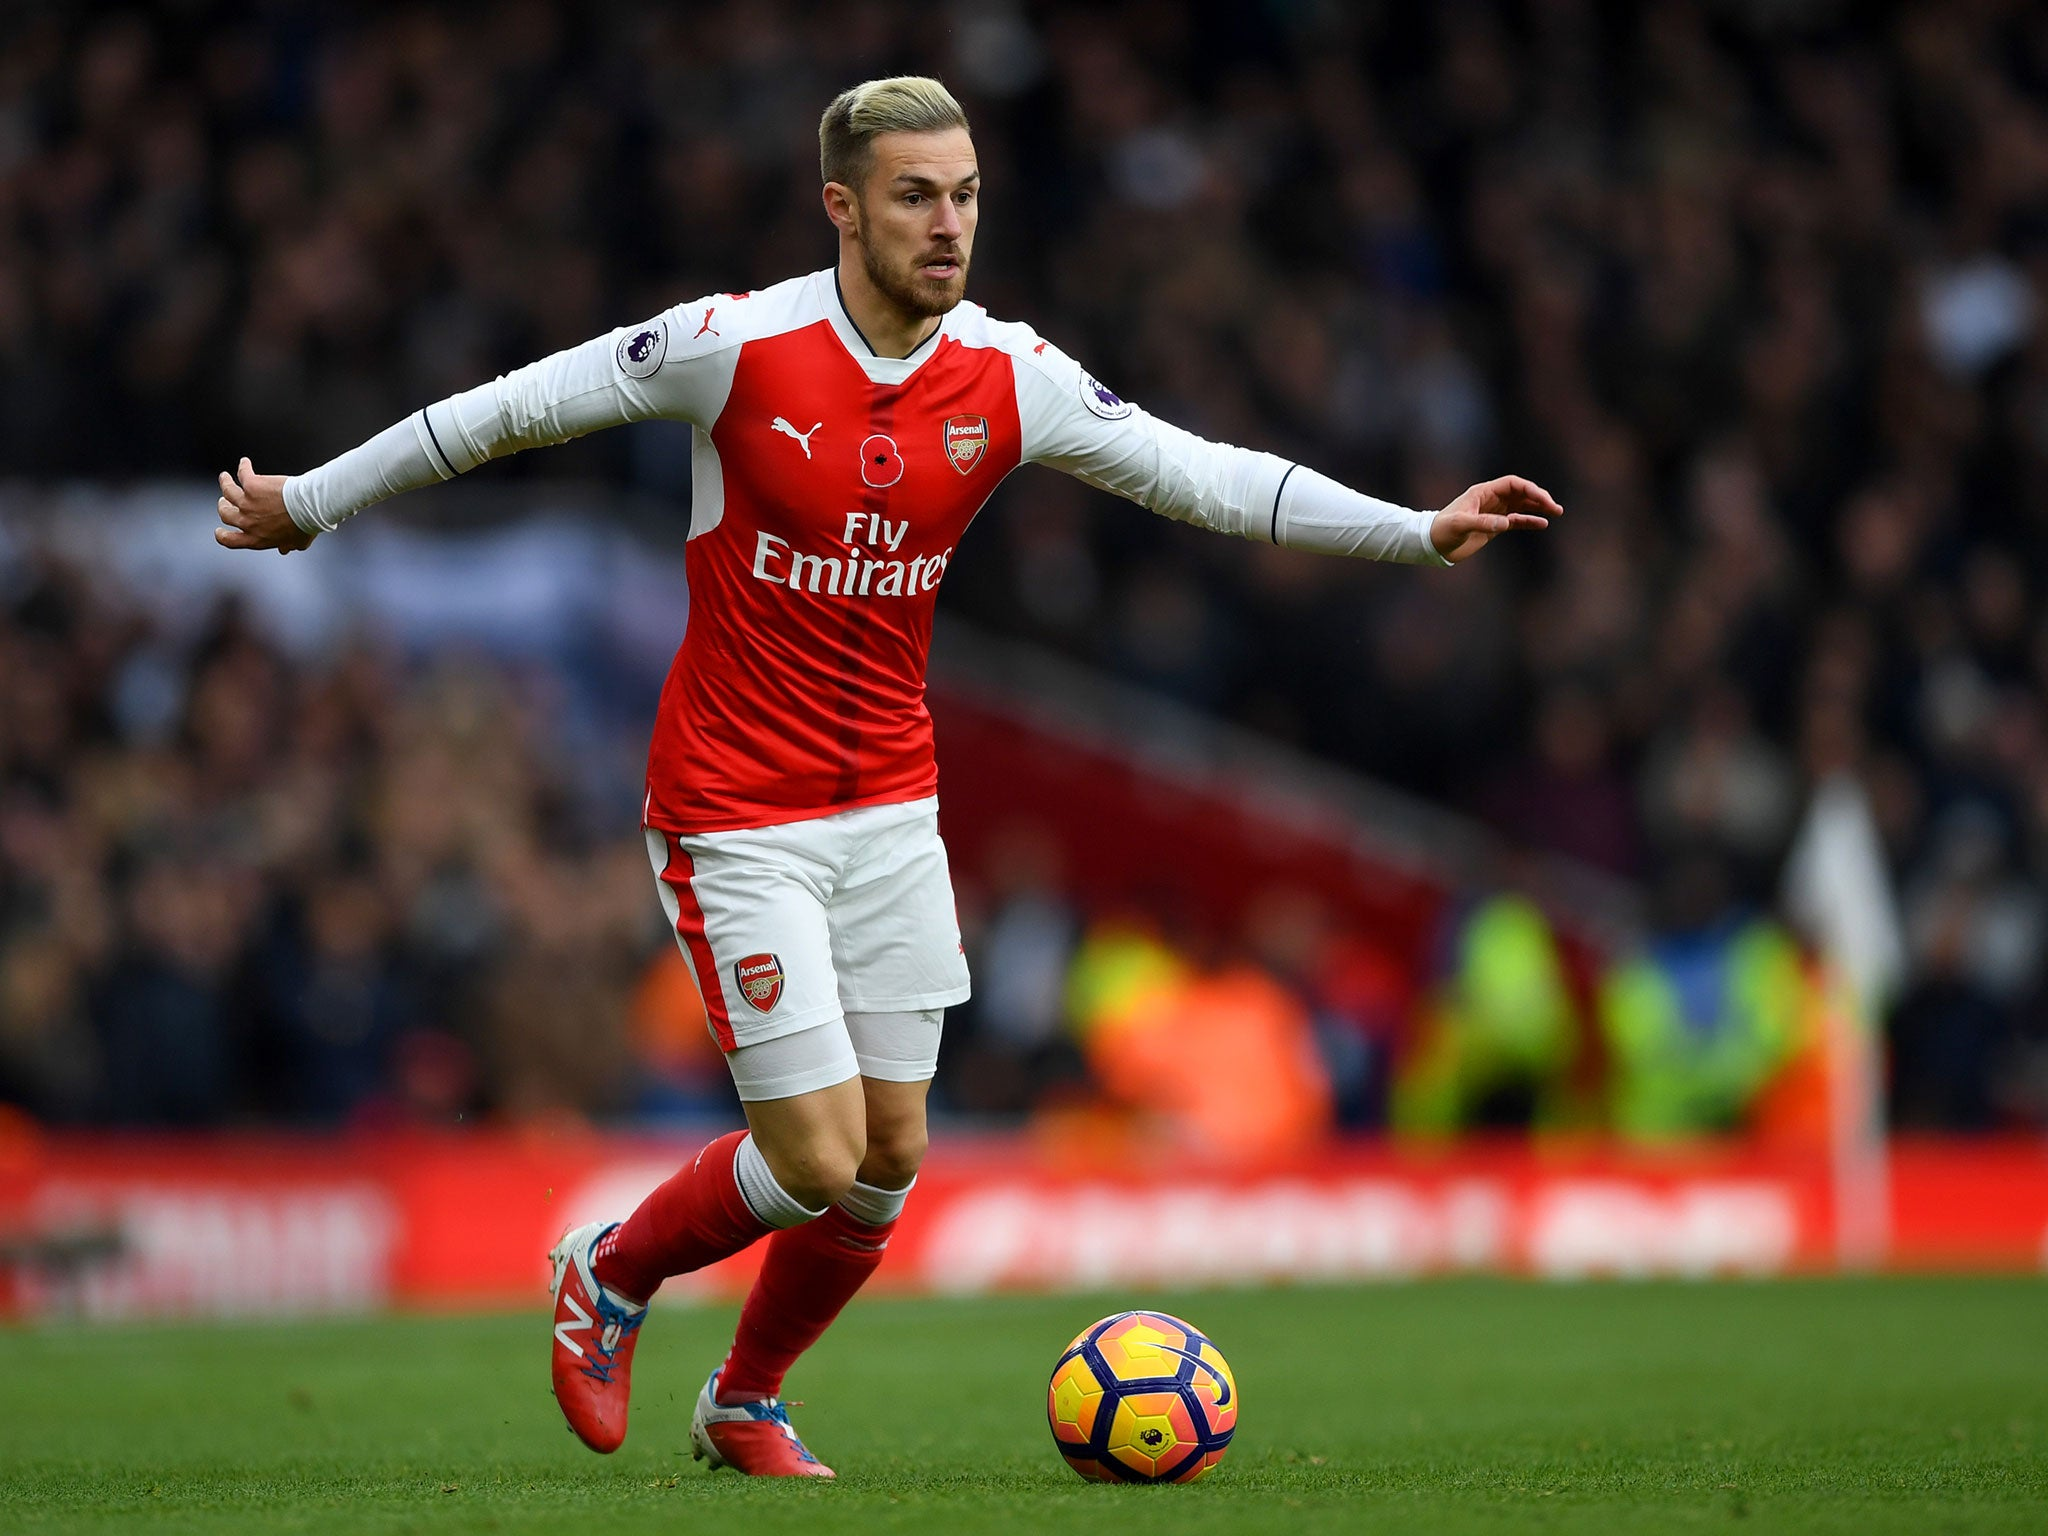 Ramsey: Arsenal News: Real Madrid Target Aaron Ramsey With £25m